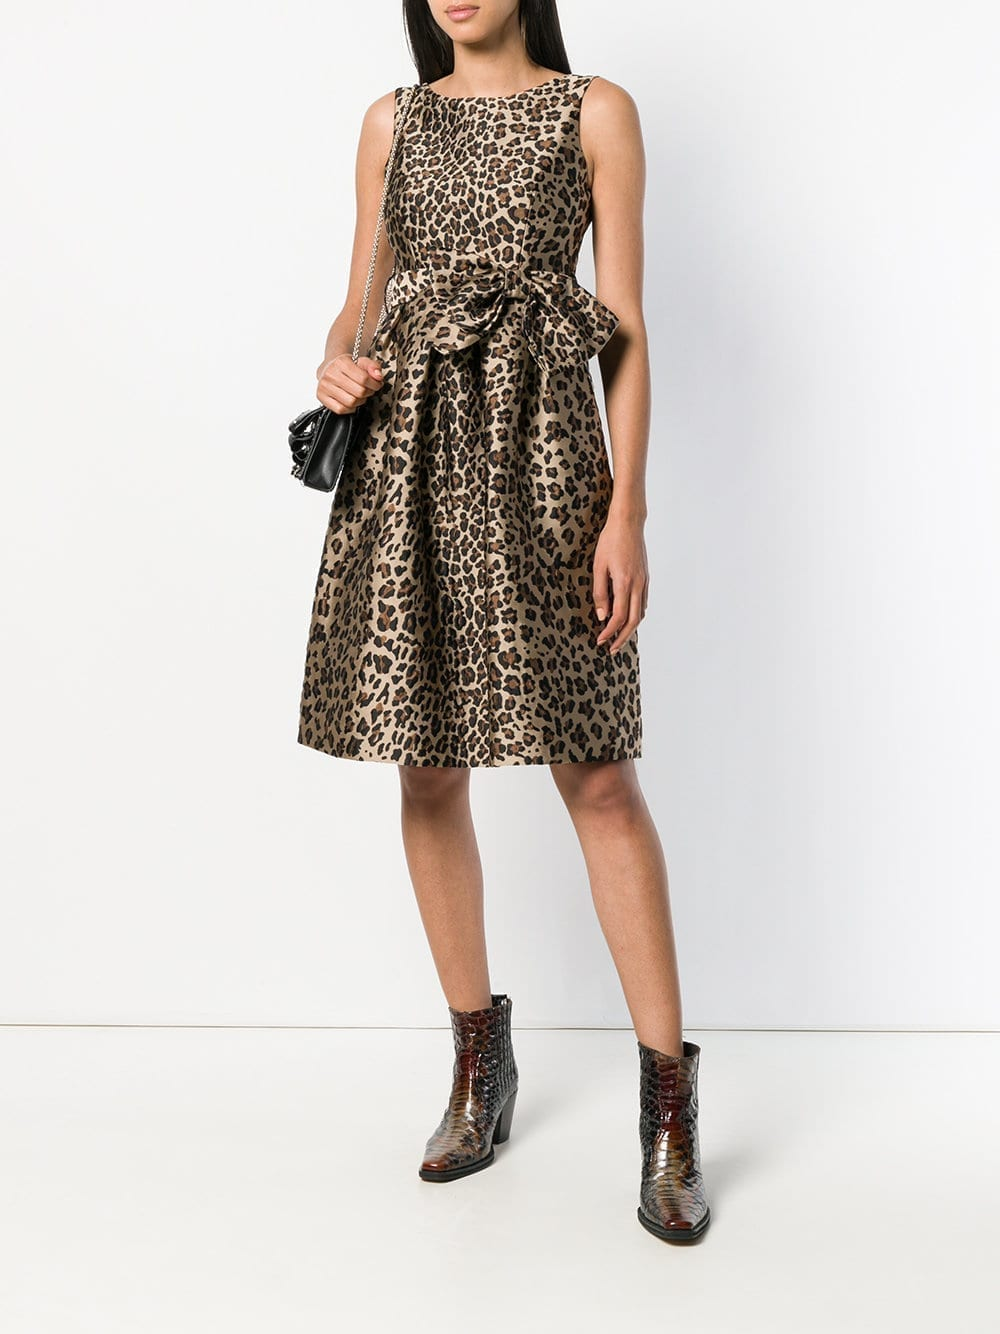 P.A.R.O.S.H. Bow Detail Leopard Print Brown Dress